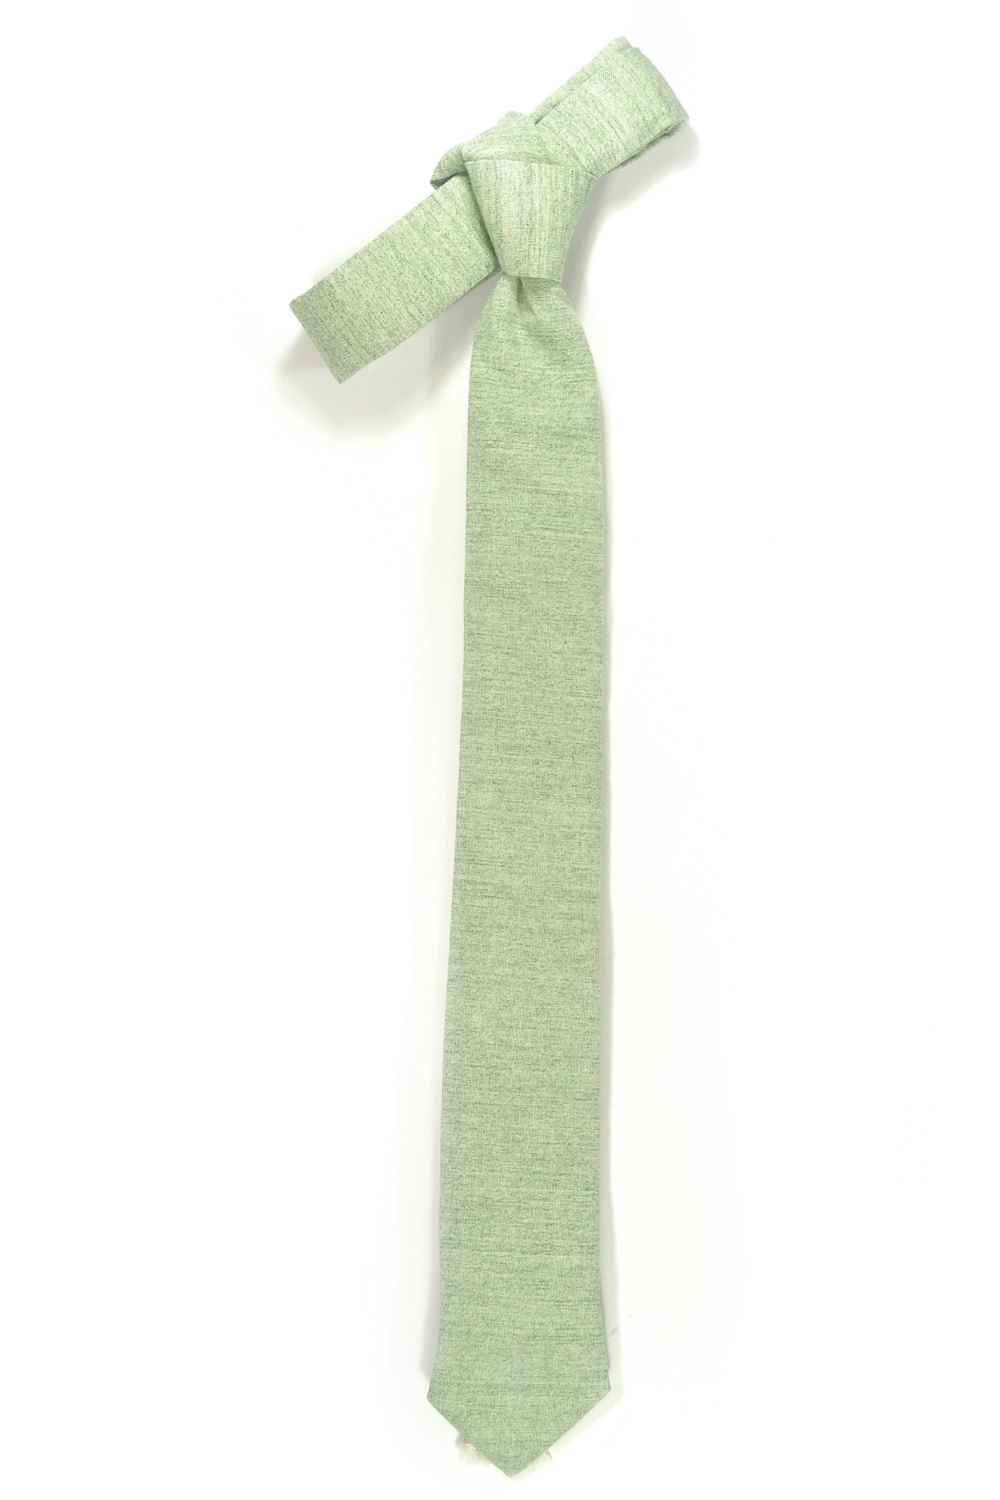 Green Wedding Mens Tie Skinny Necktie  green Japanese fabric image 4